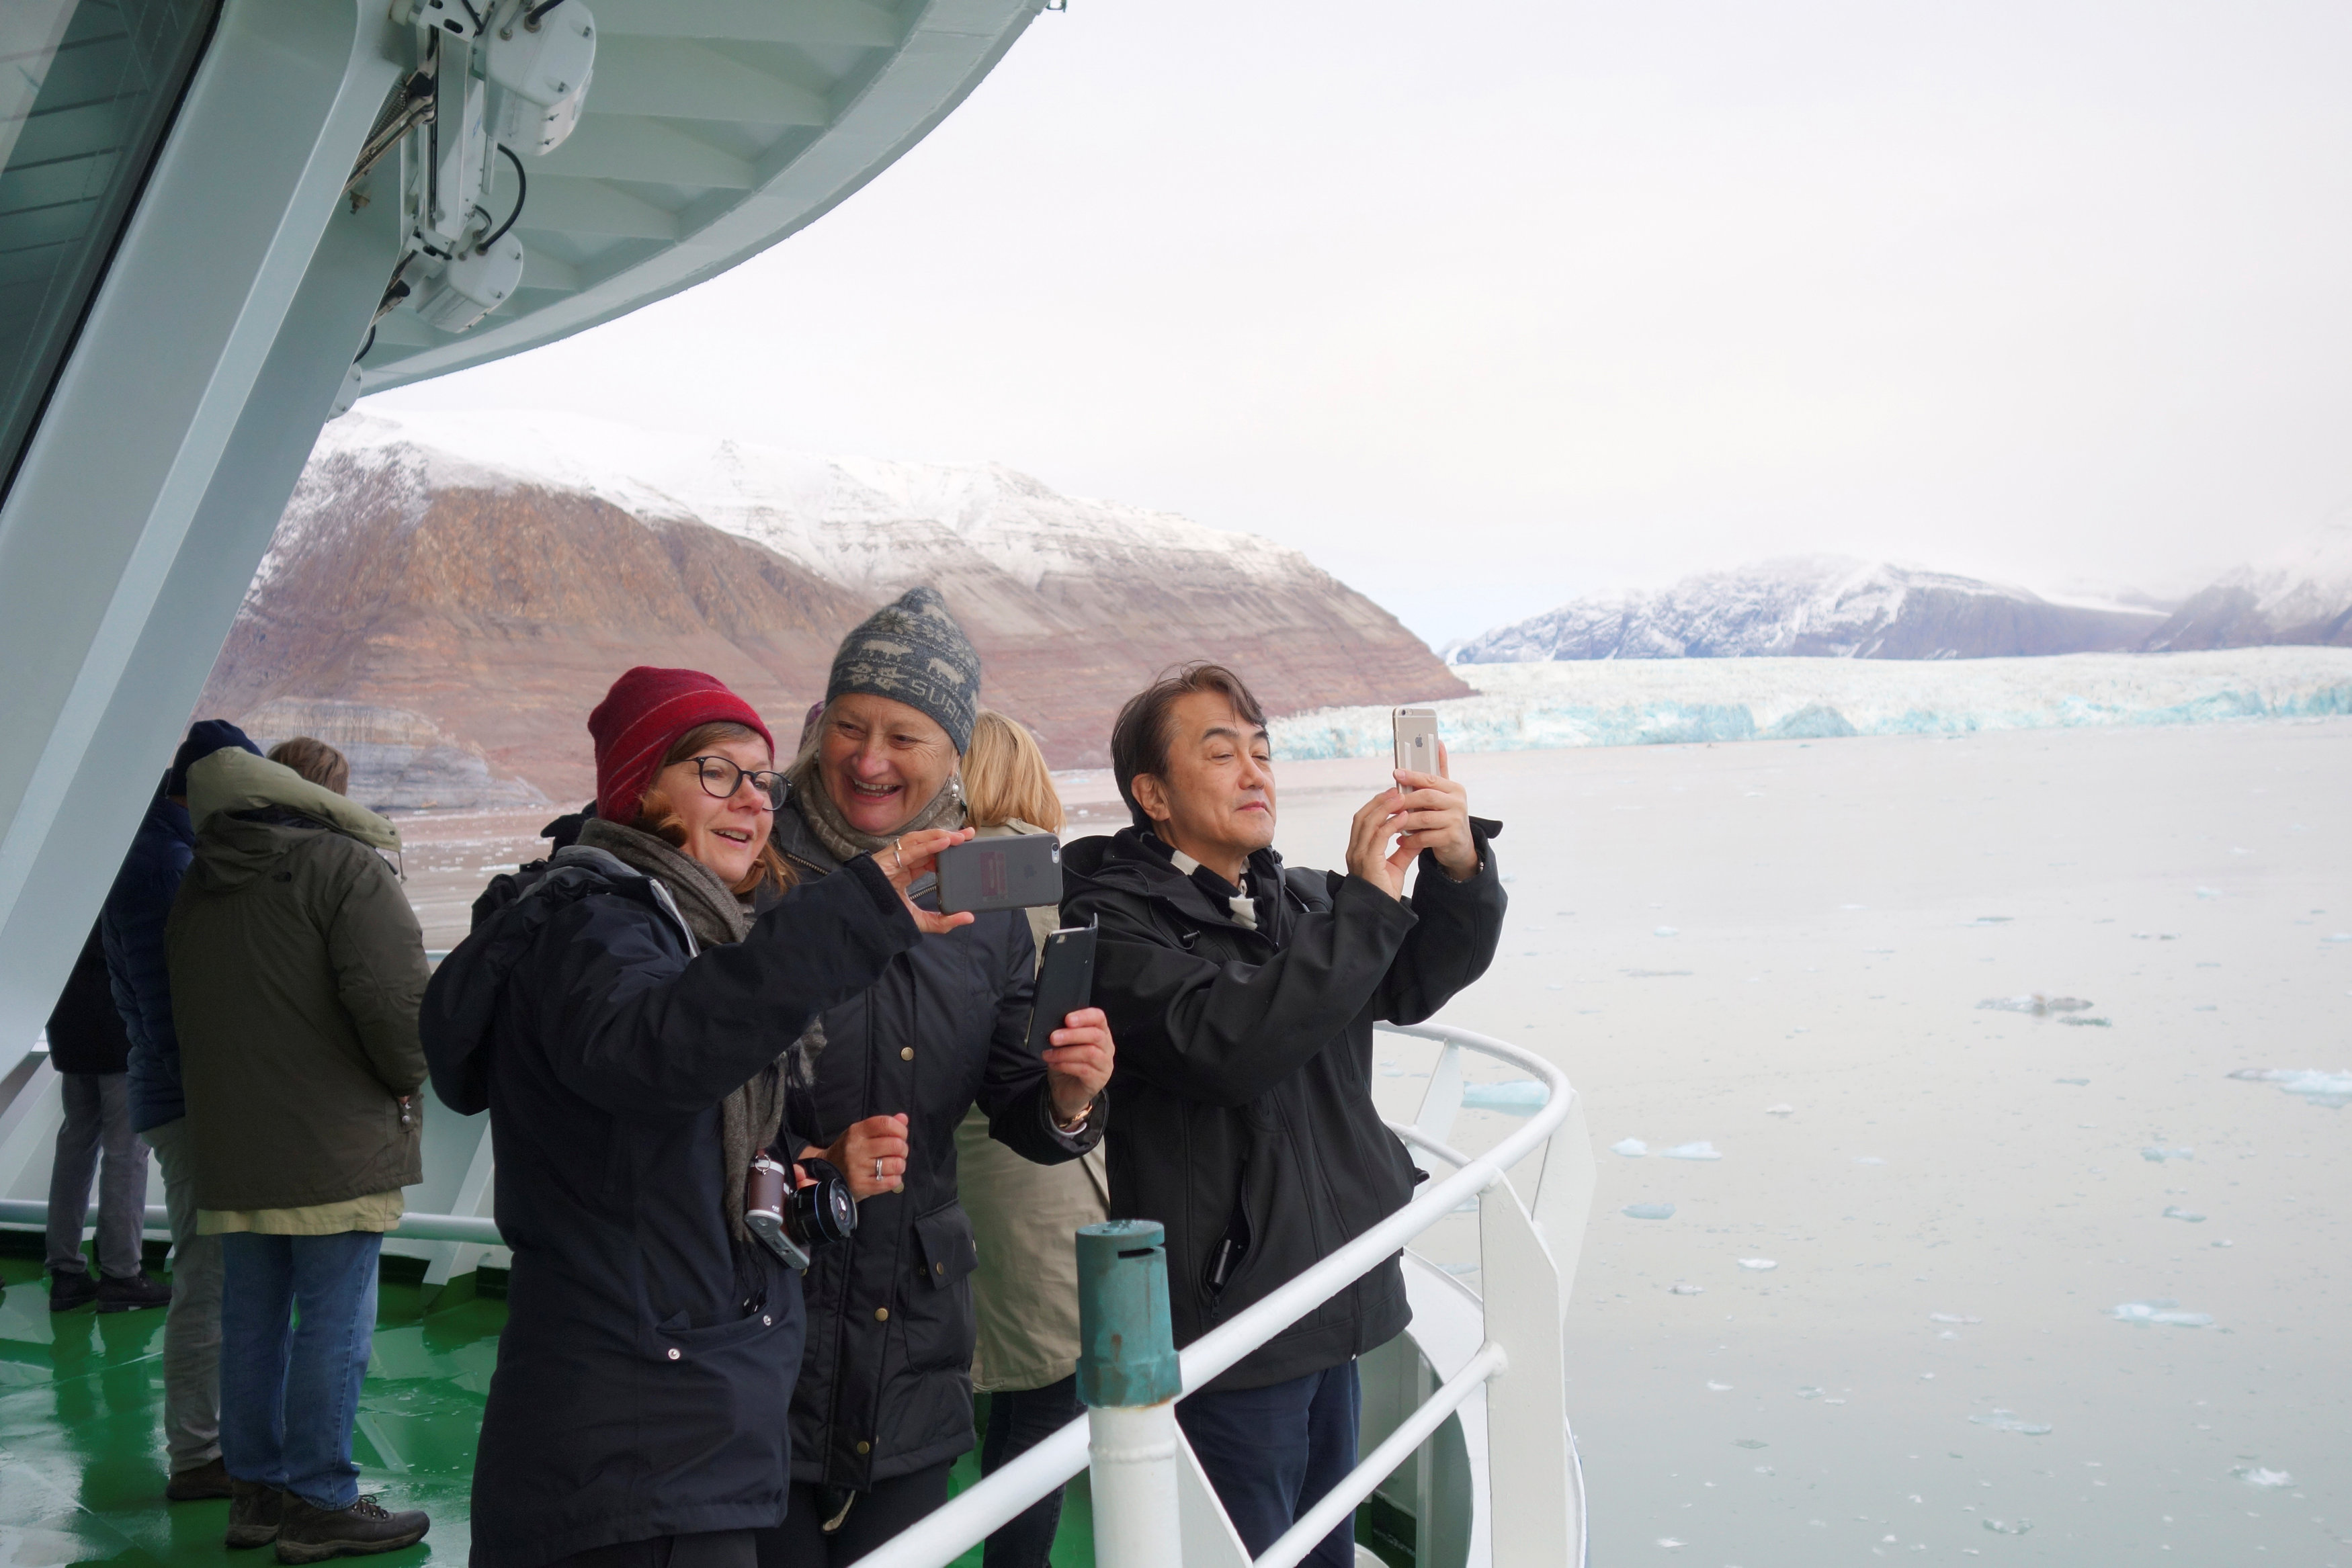 Visitors take pictures of a glacier in the Kongsfjorden fjord from onboard the Polarsyssel, the ship of the Governor of Svalbard, in the Arctic archipelago of Svalbard, Norway, September 20, 2016.  Picture taken September 20, 2016. (Gwladys Fouche / Reuters)